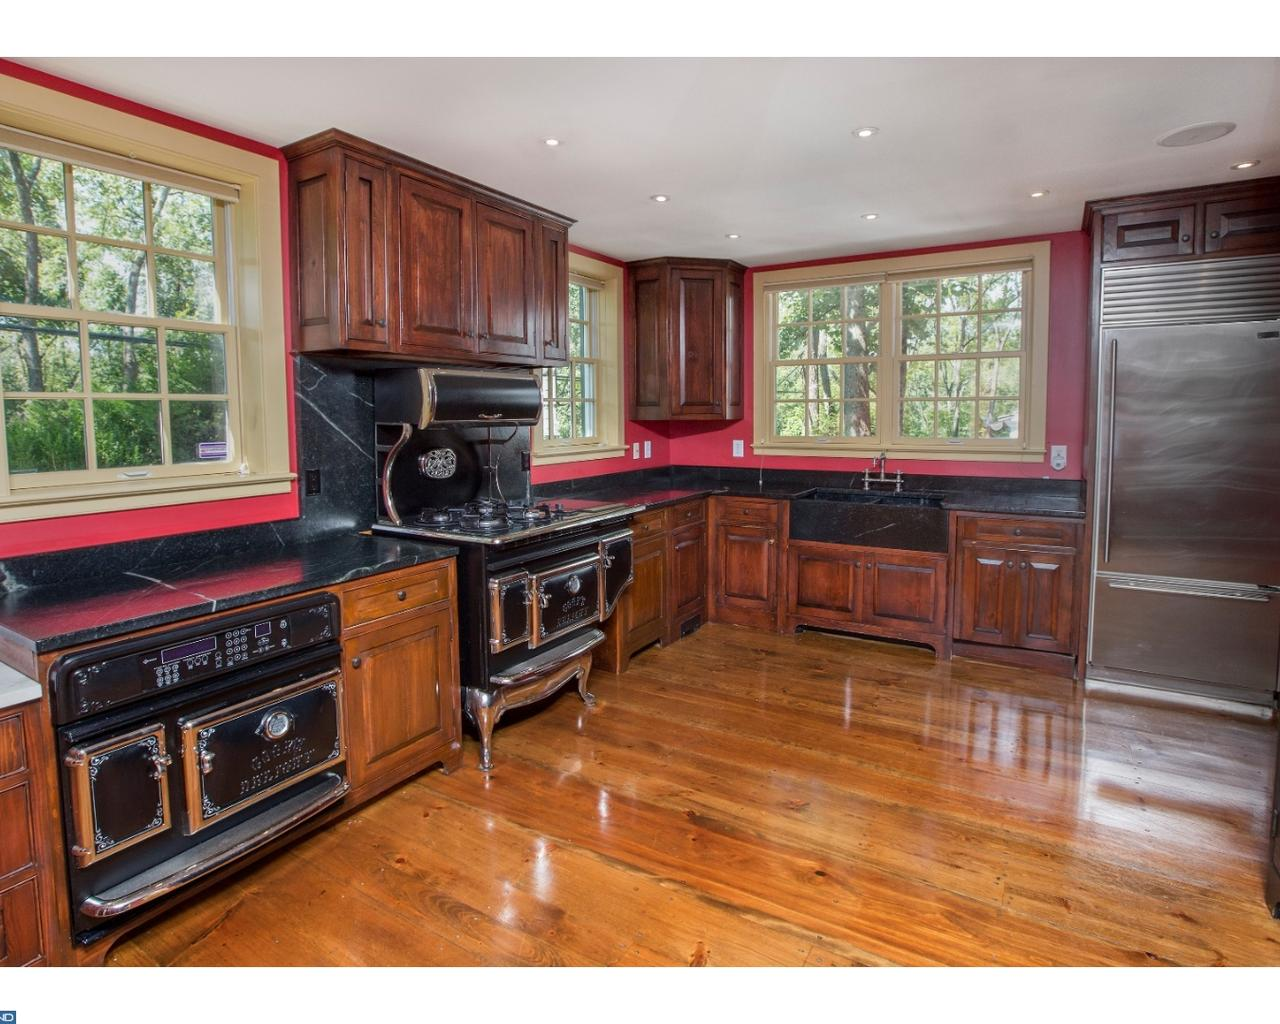 Cozy Homes for Sale in Greater Philadelphia